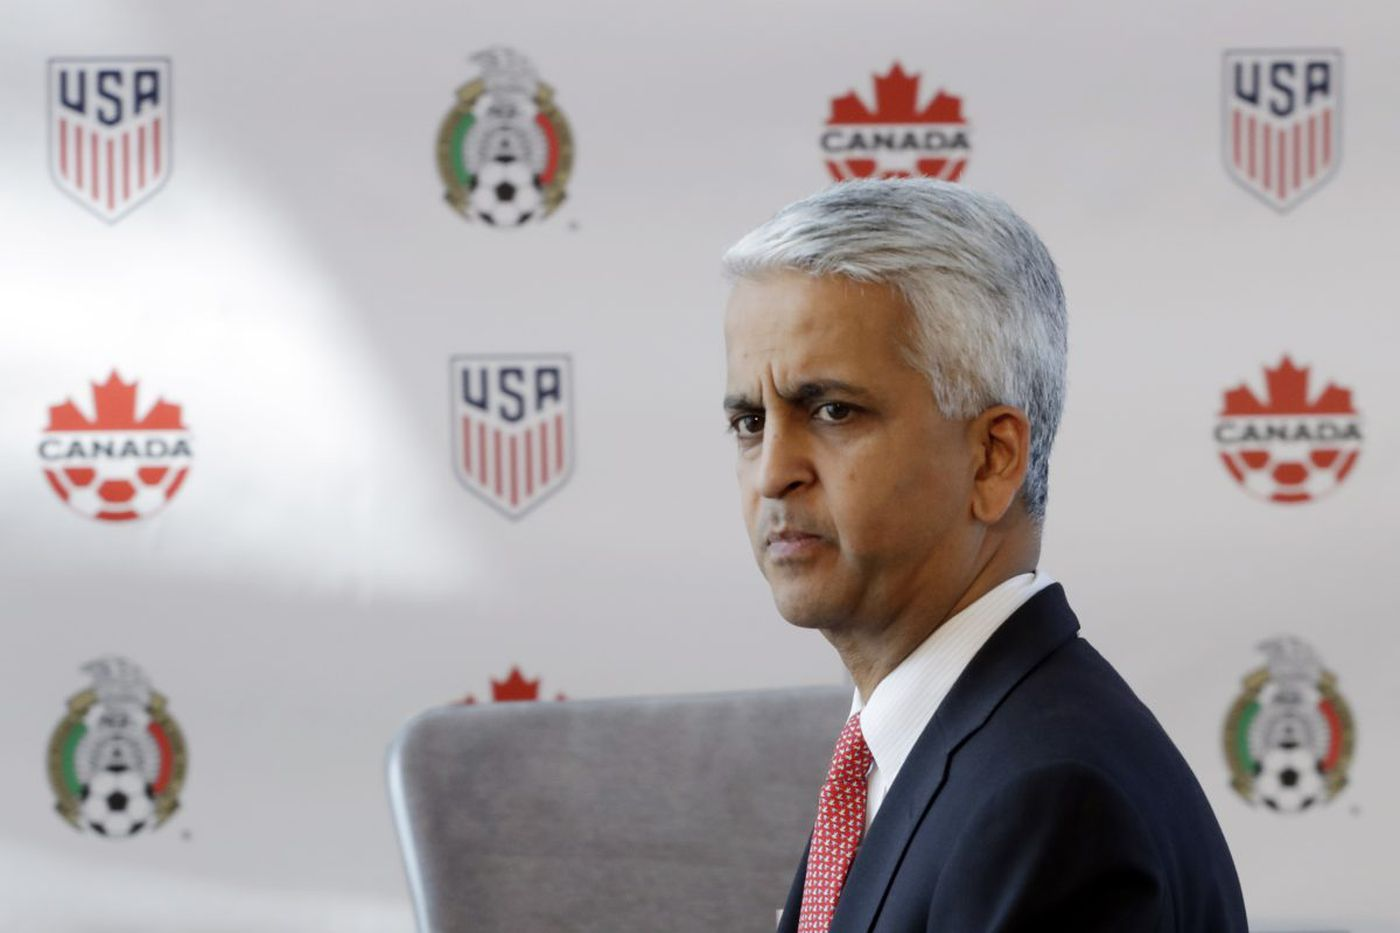 American soccer needs changes, from players to coaches to its president | Jonathan Tannenwald